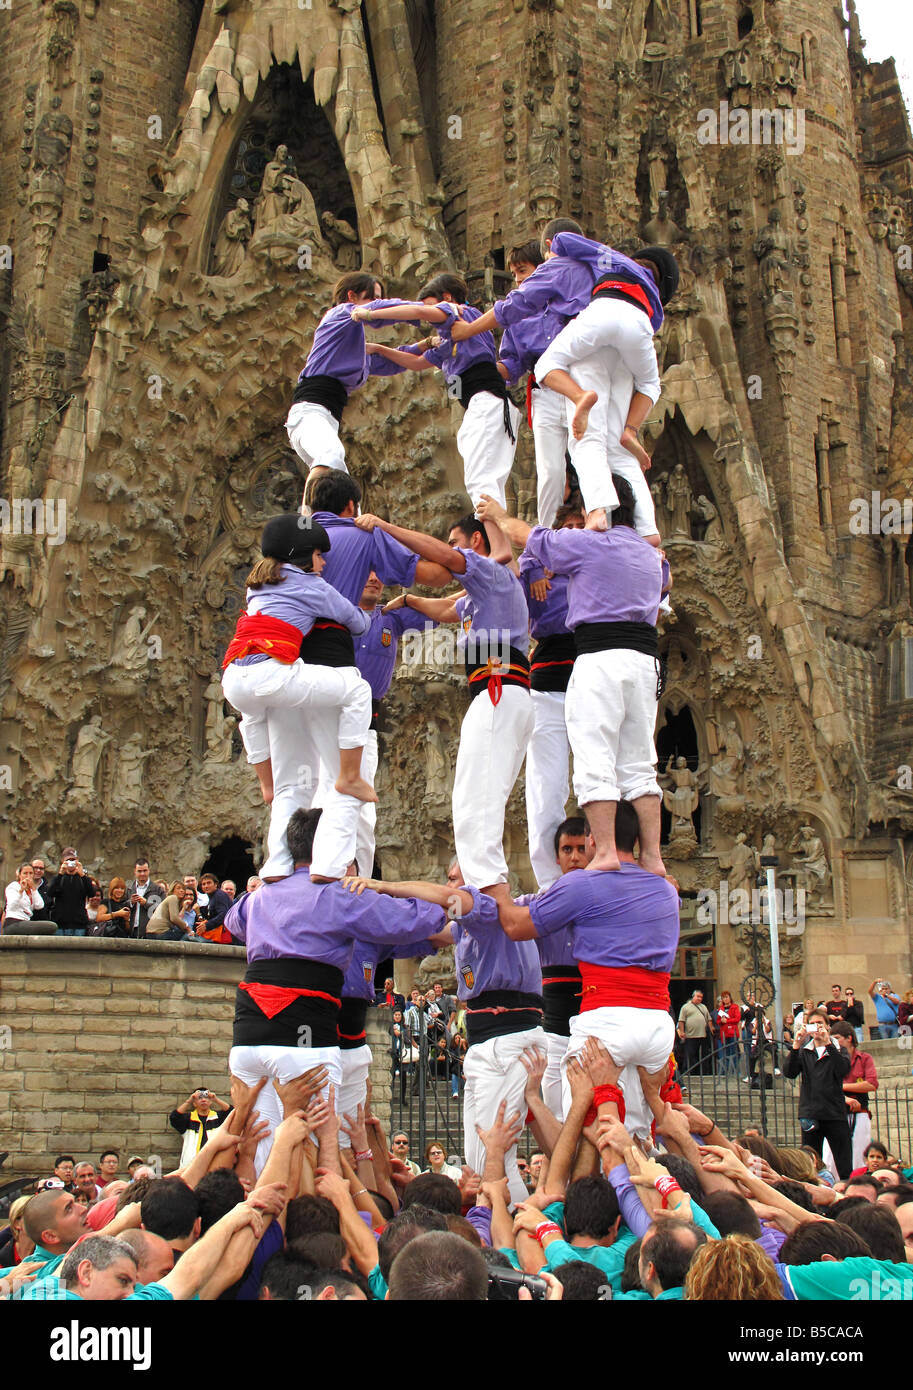 Castellers building human tower(castell) outside Gaudi's La Sagrada Familia Cathedral, Barcelona, Spain - Stock Image